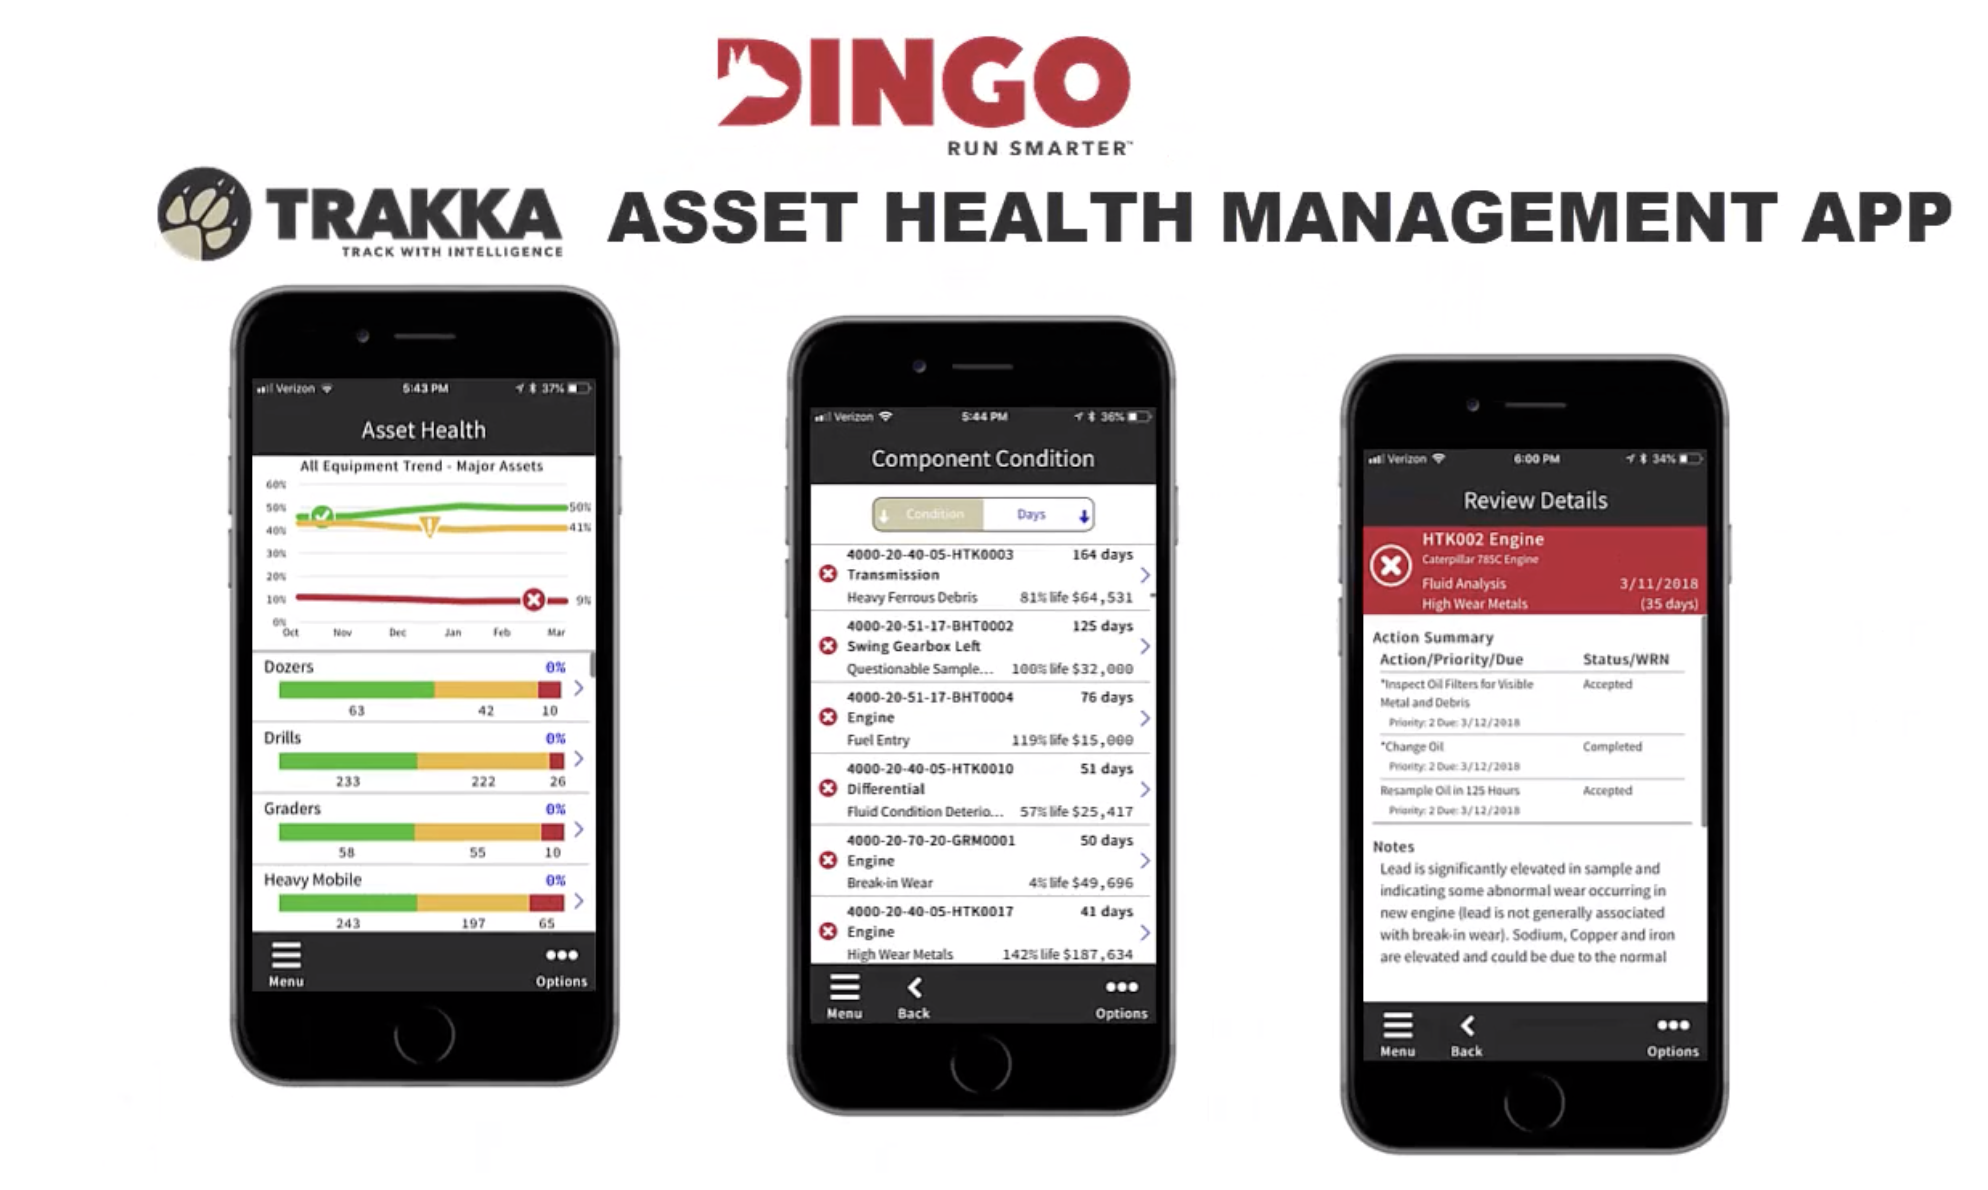 Trakka-Asset-Health-Management-App-Dingo